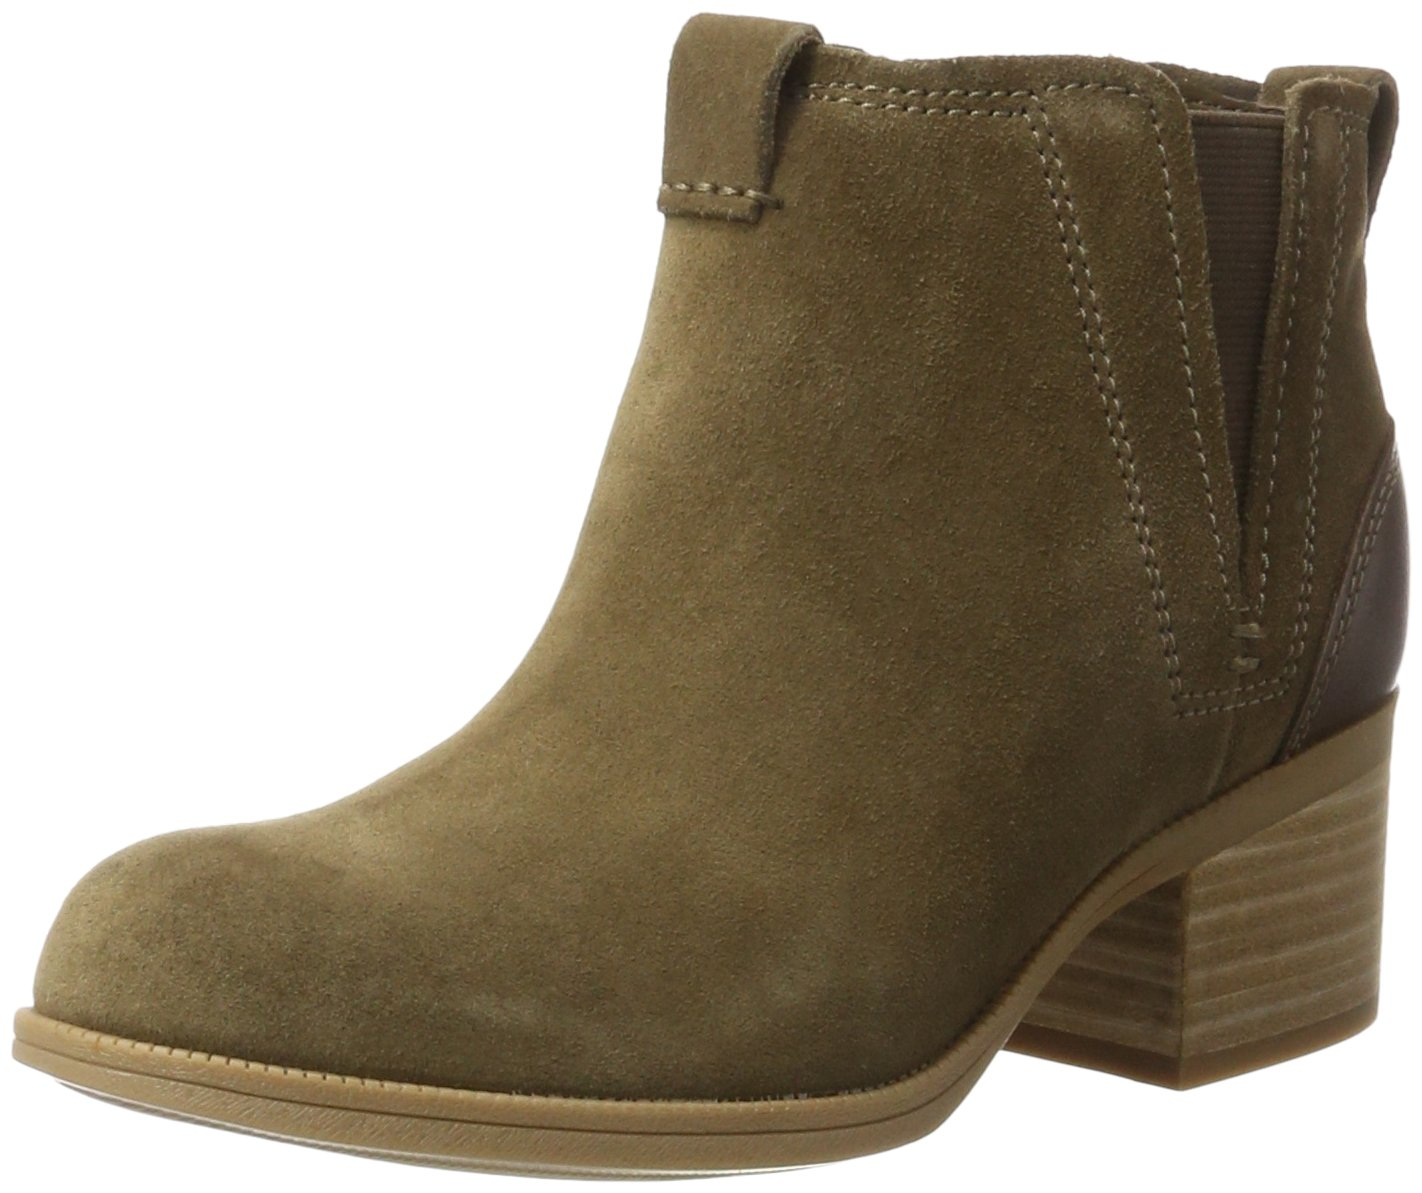 Clarks Bottes B012OBQCEK Maypearl Daisy, Clarks Bottes Femme Vert (Olive) b90746a - shopssong.space